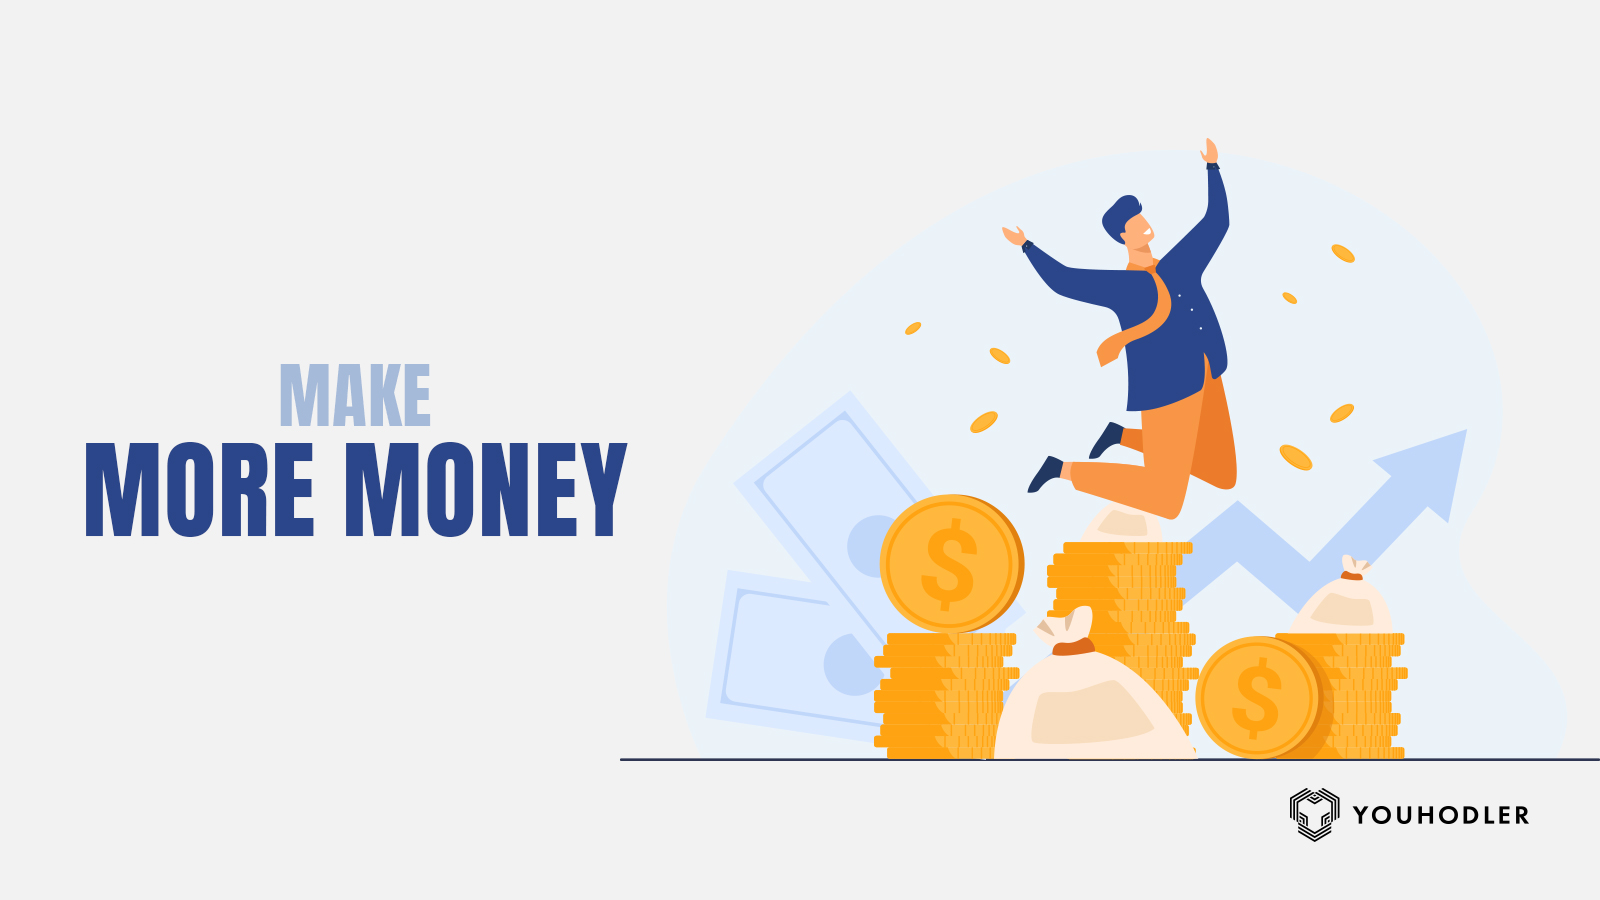 make more money, borrow bitcoin, investment, investing, buy BTC